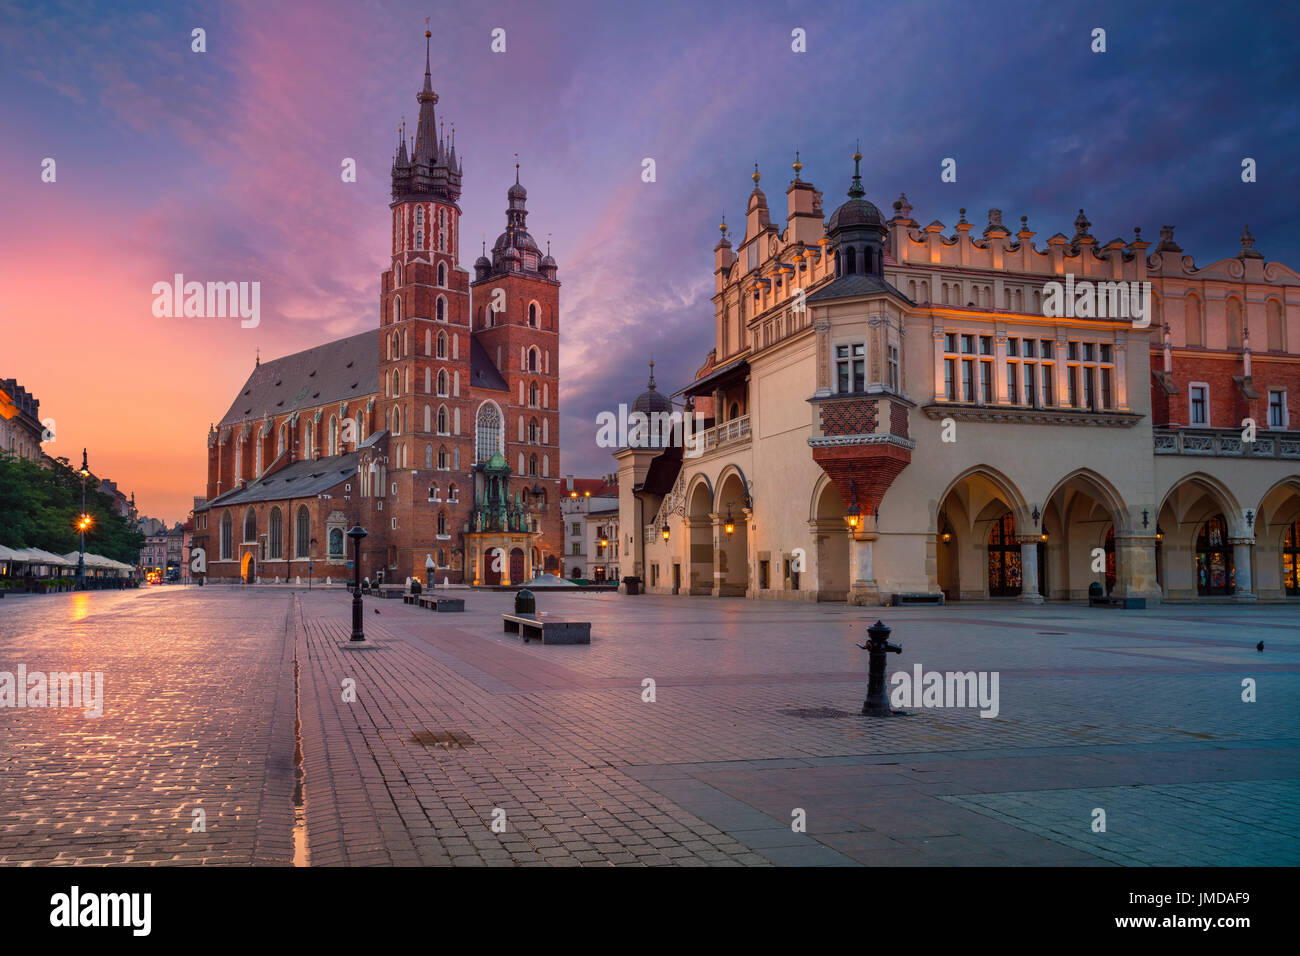 Krakow. Image of old town Krakow, Poland during sunrise. - Stock Image